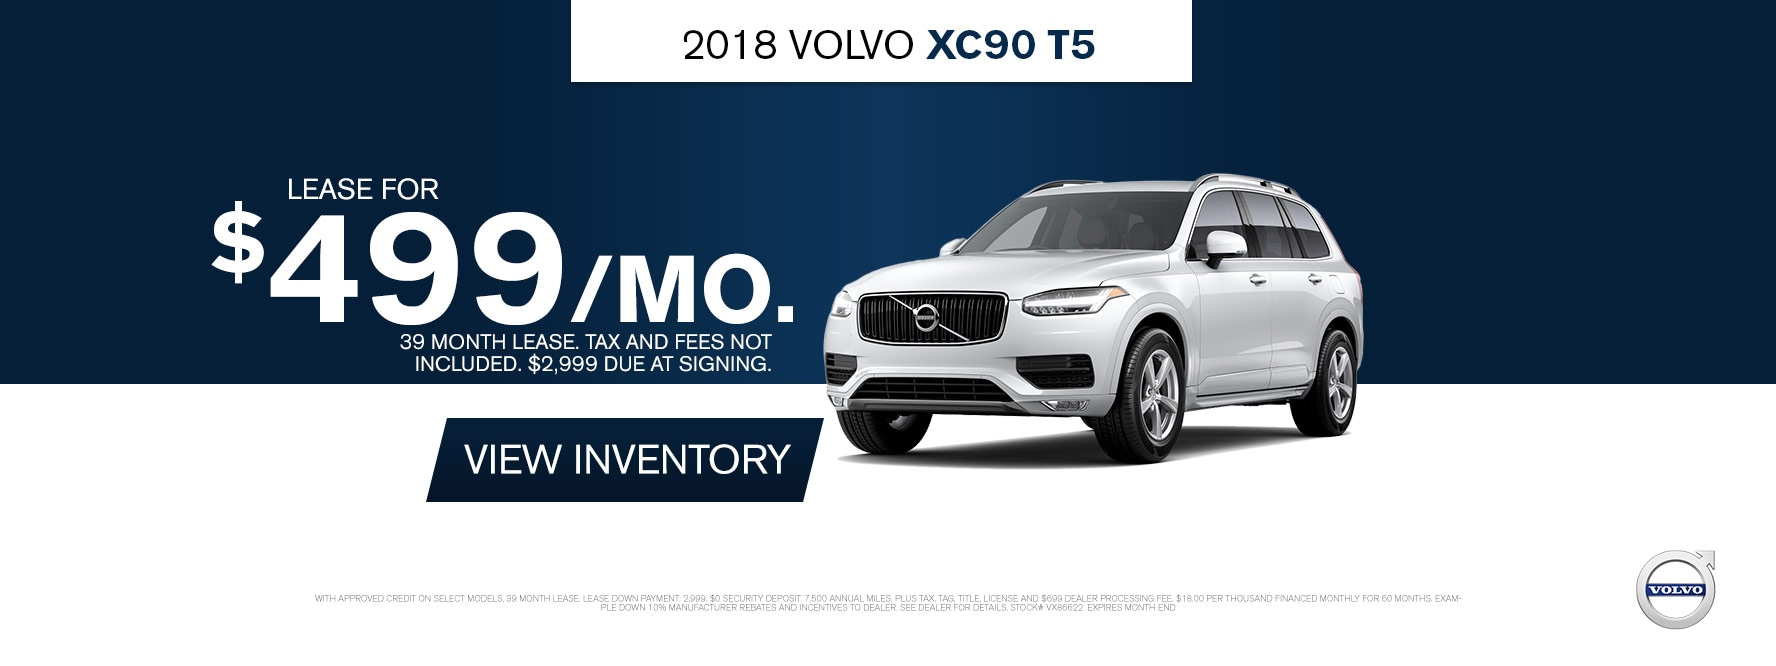 Wallace Volvo In Stuart, FL | New And Pre Owned Volvo Cars Serving ...